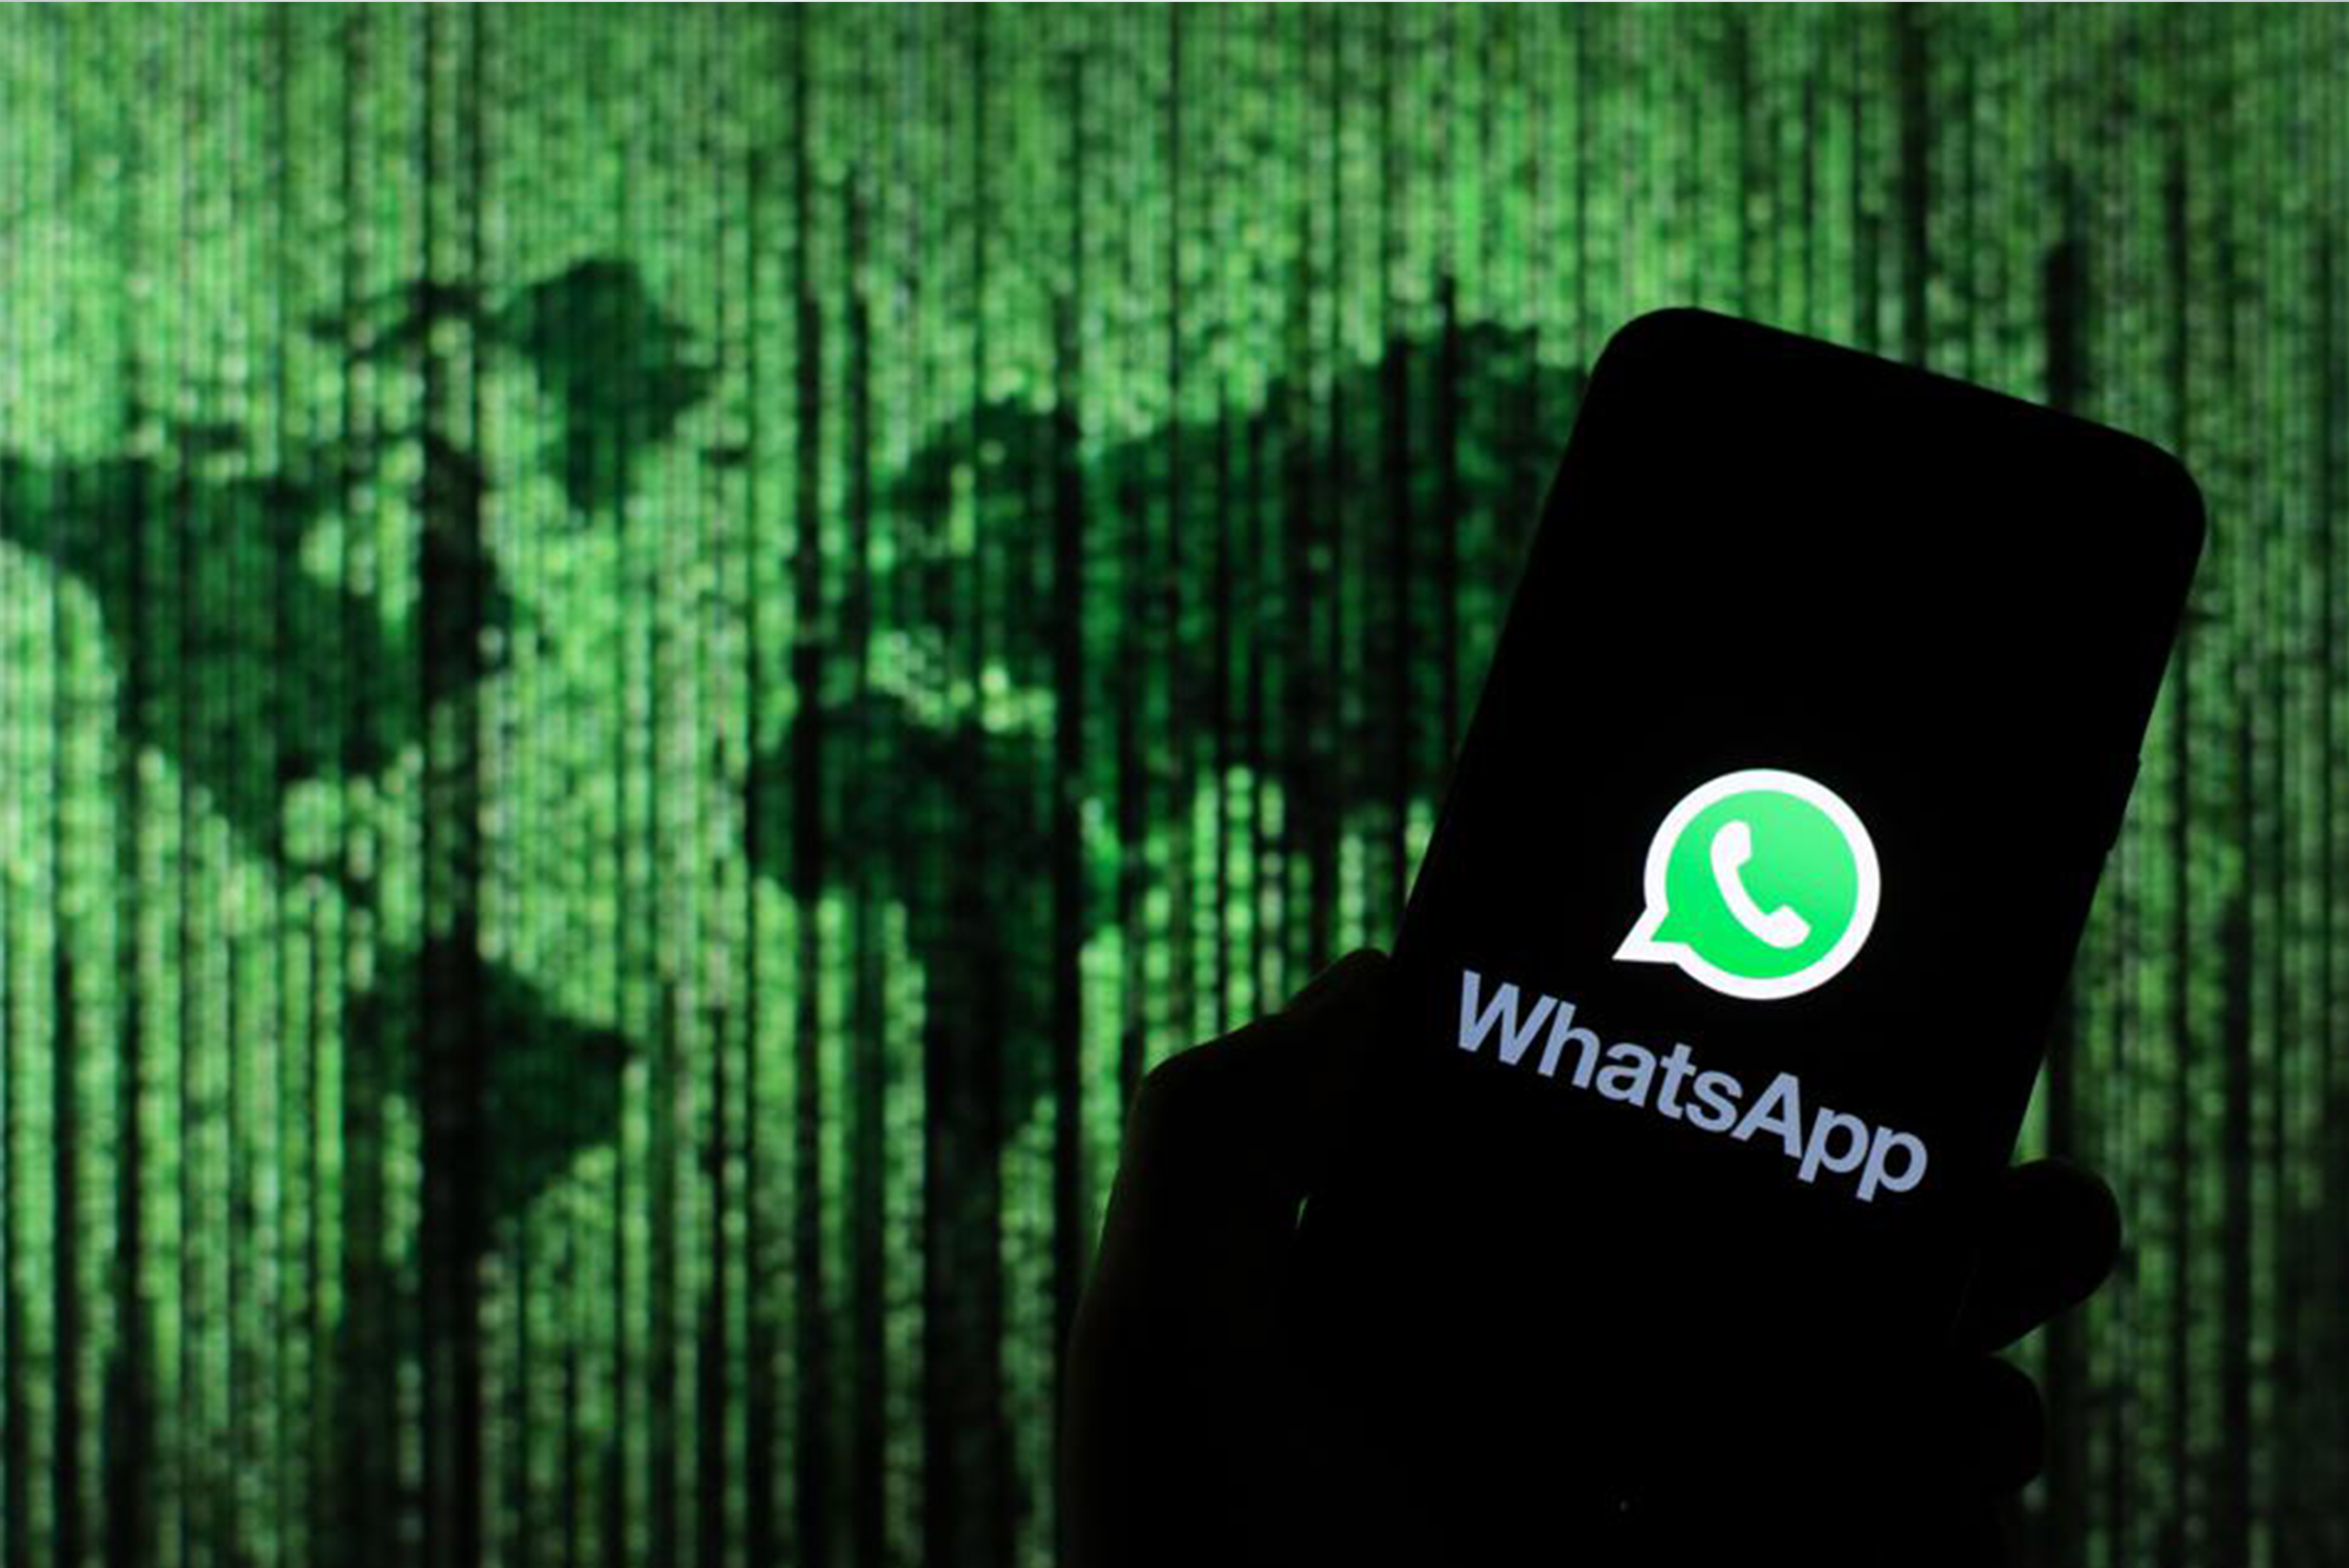 Will we be leaving Whatsapp?